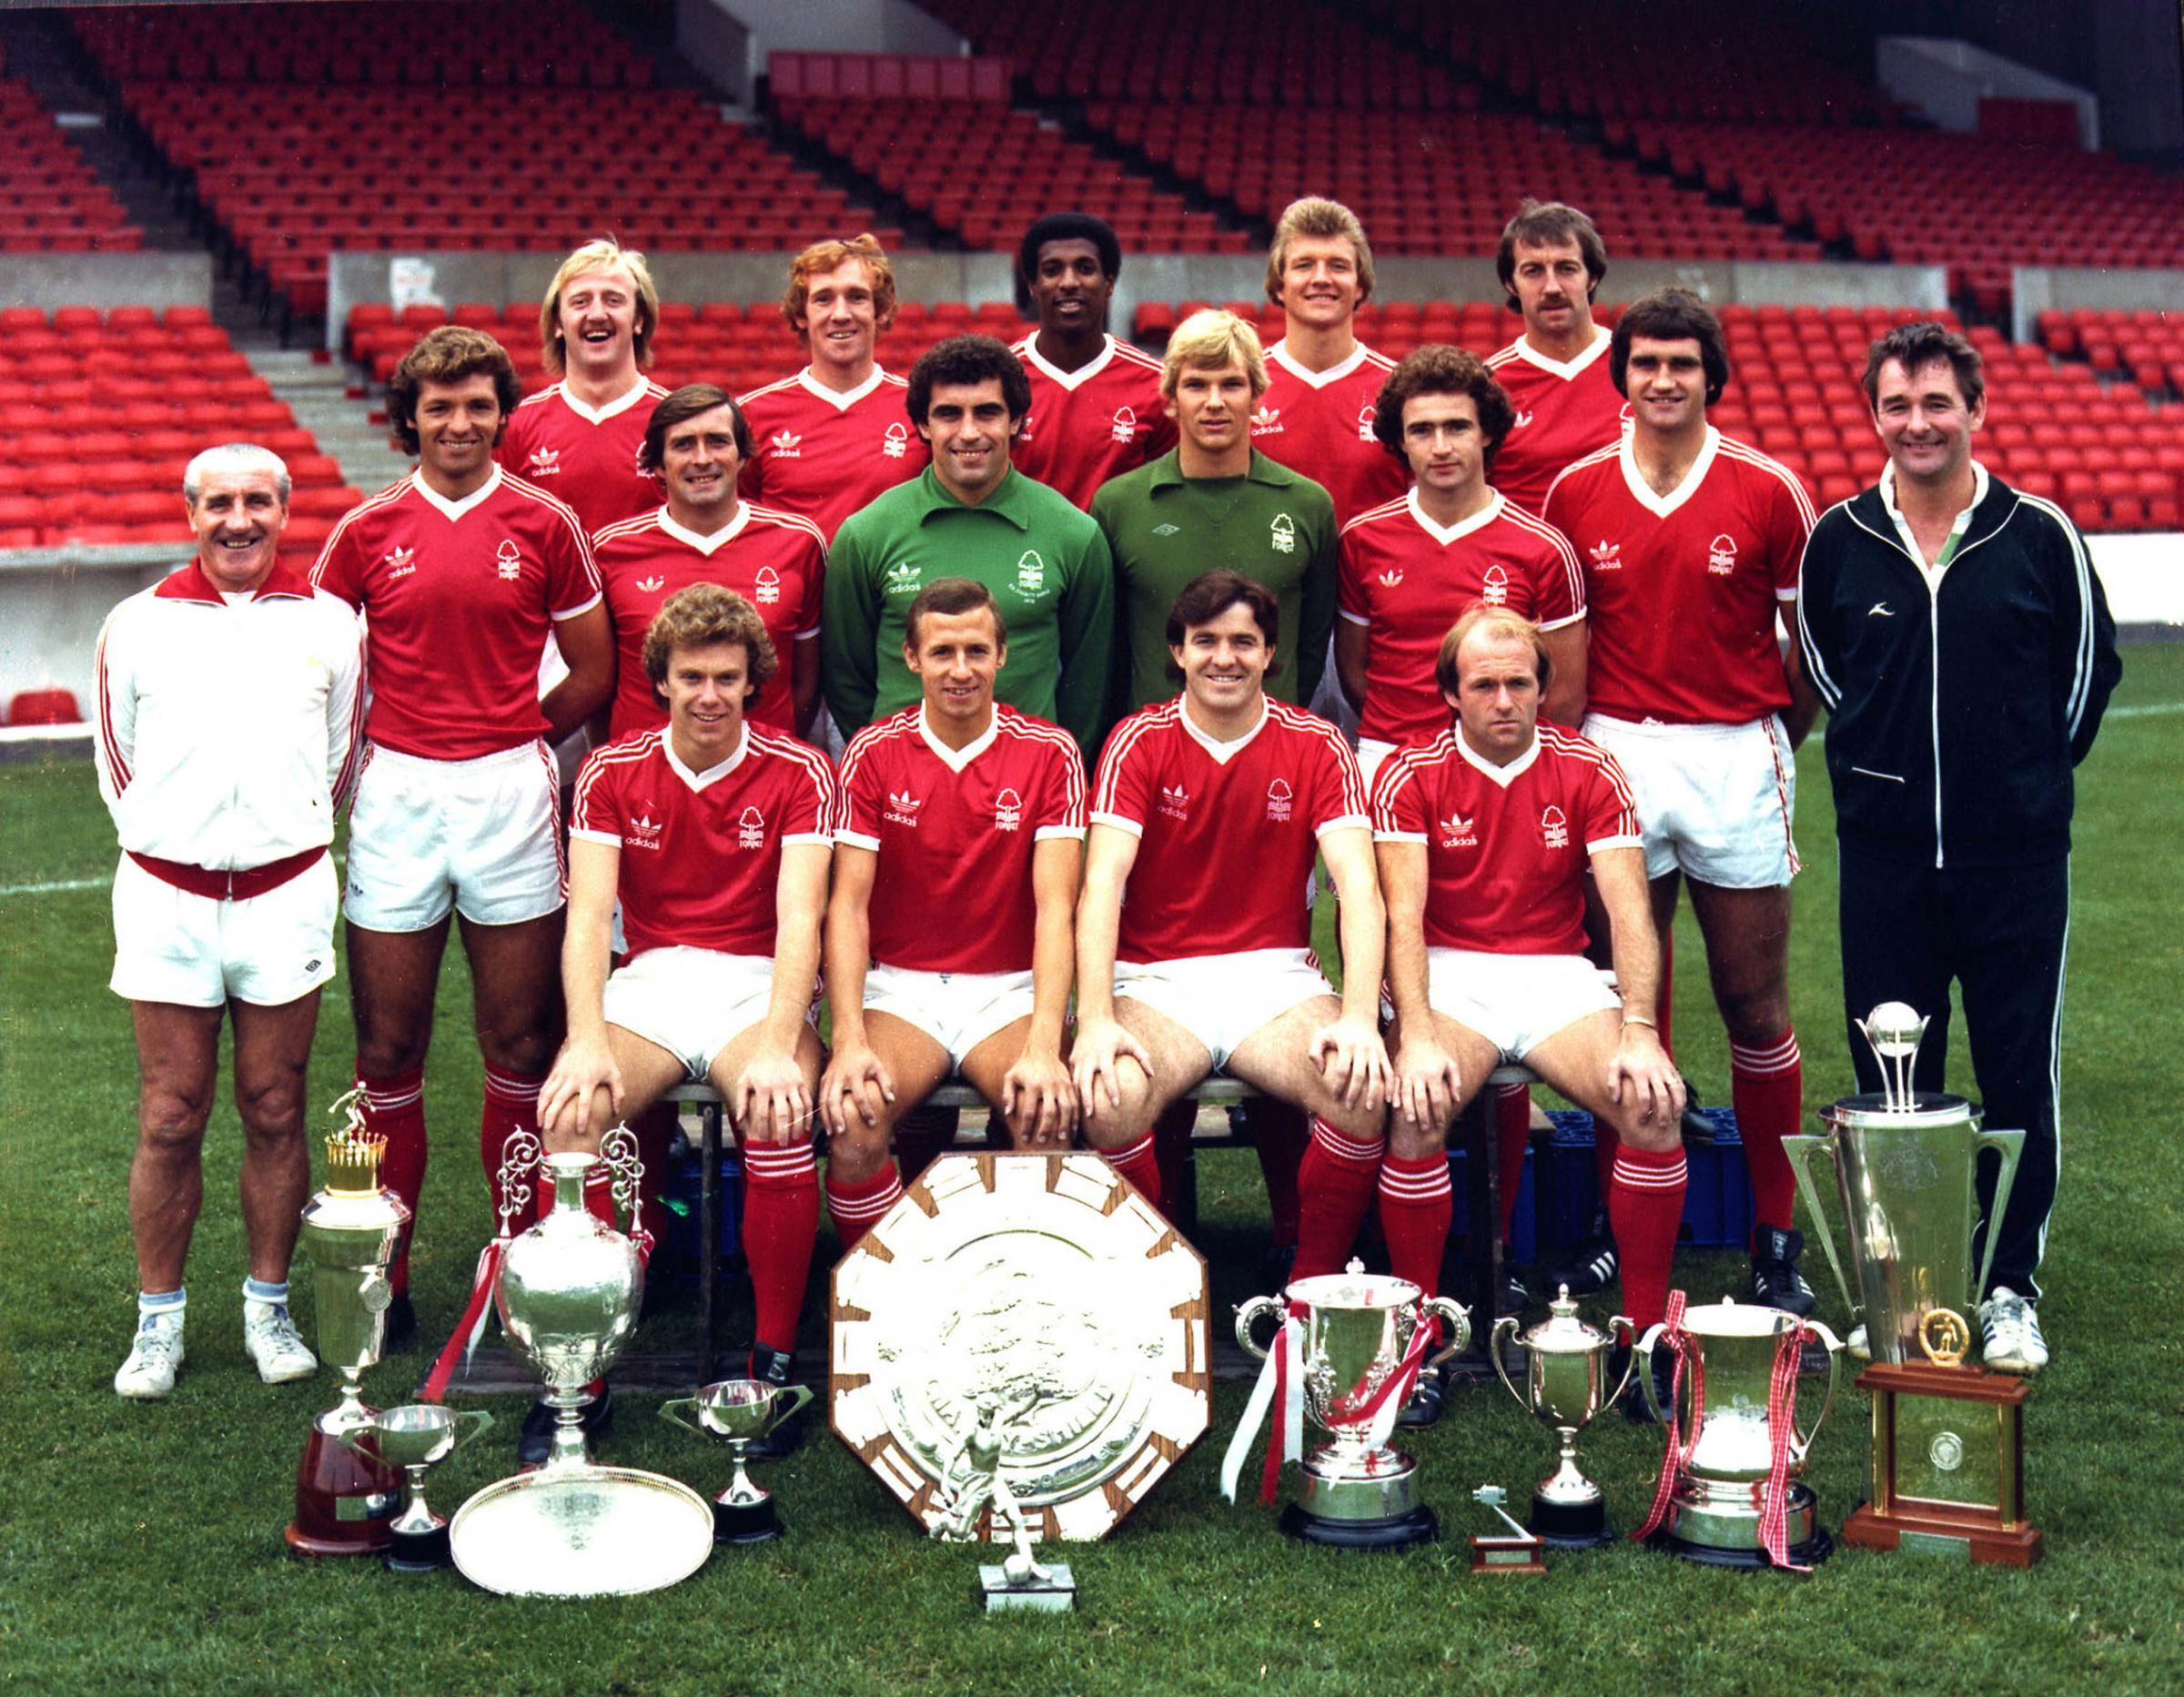 Nottingham Forest – When they were the best